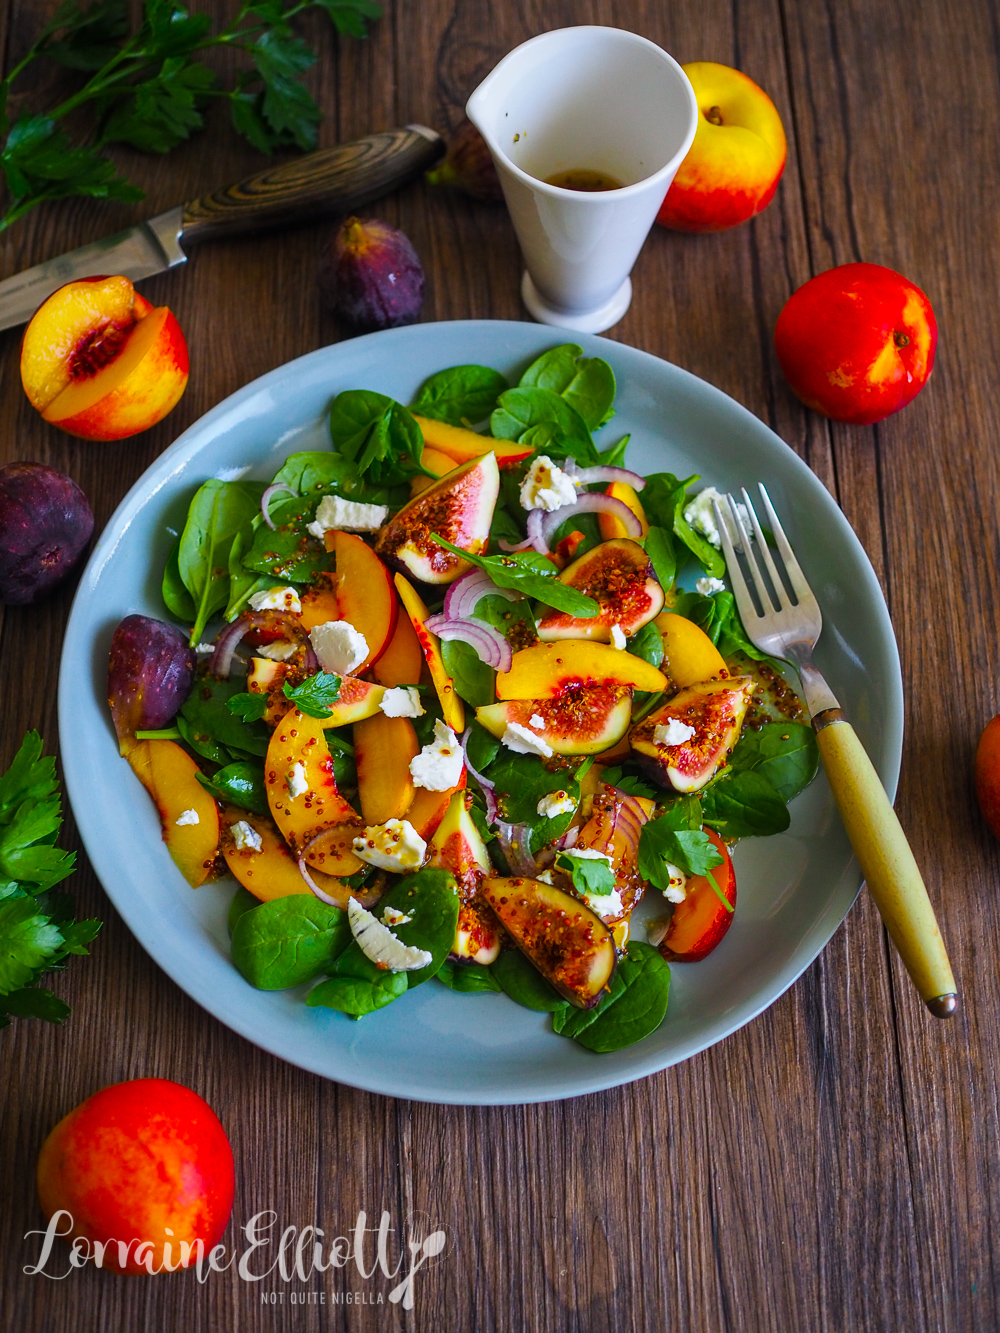 Yellow Peach, Fig & Goat's Cheese Salad